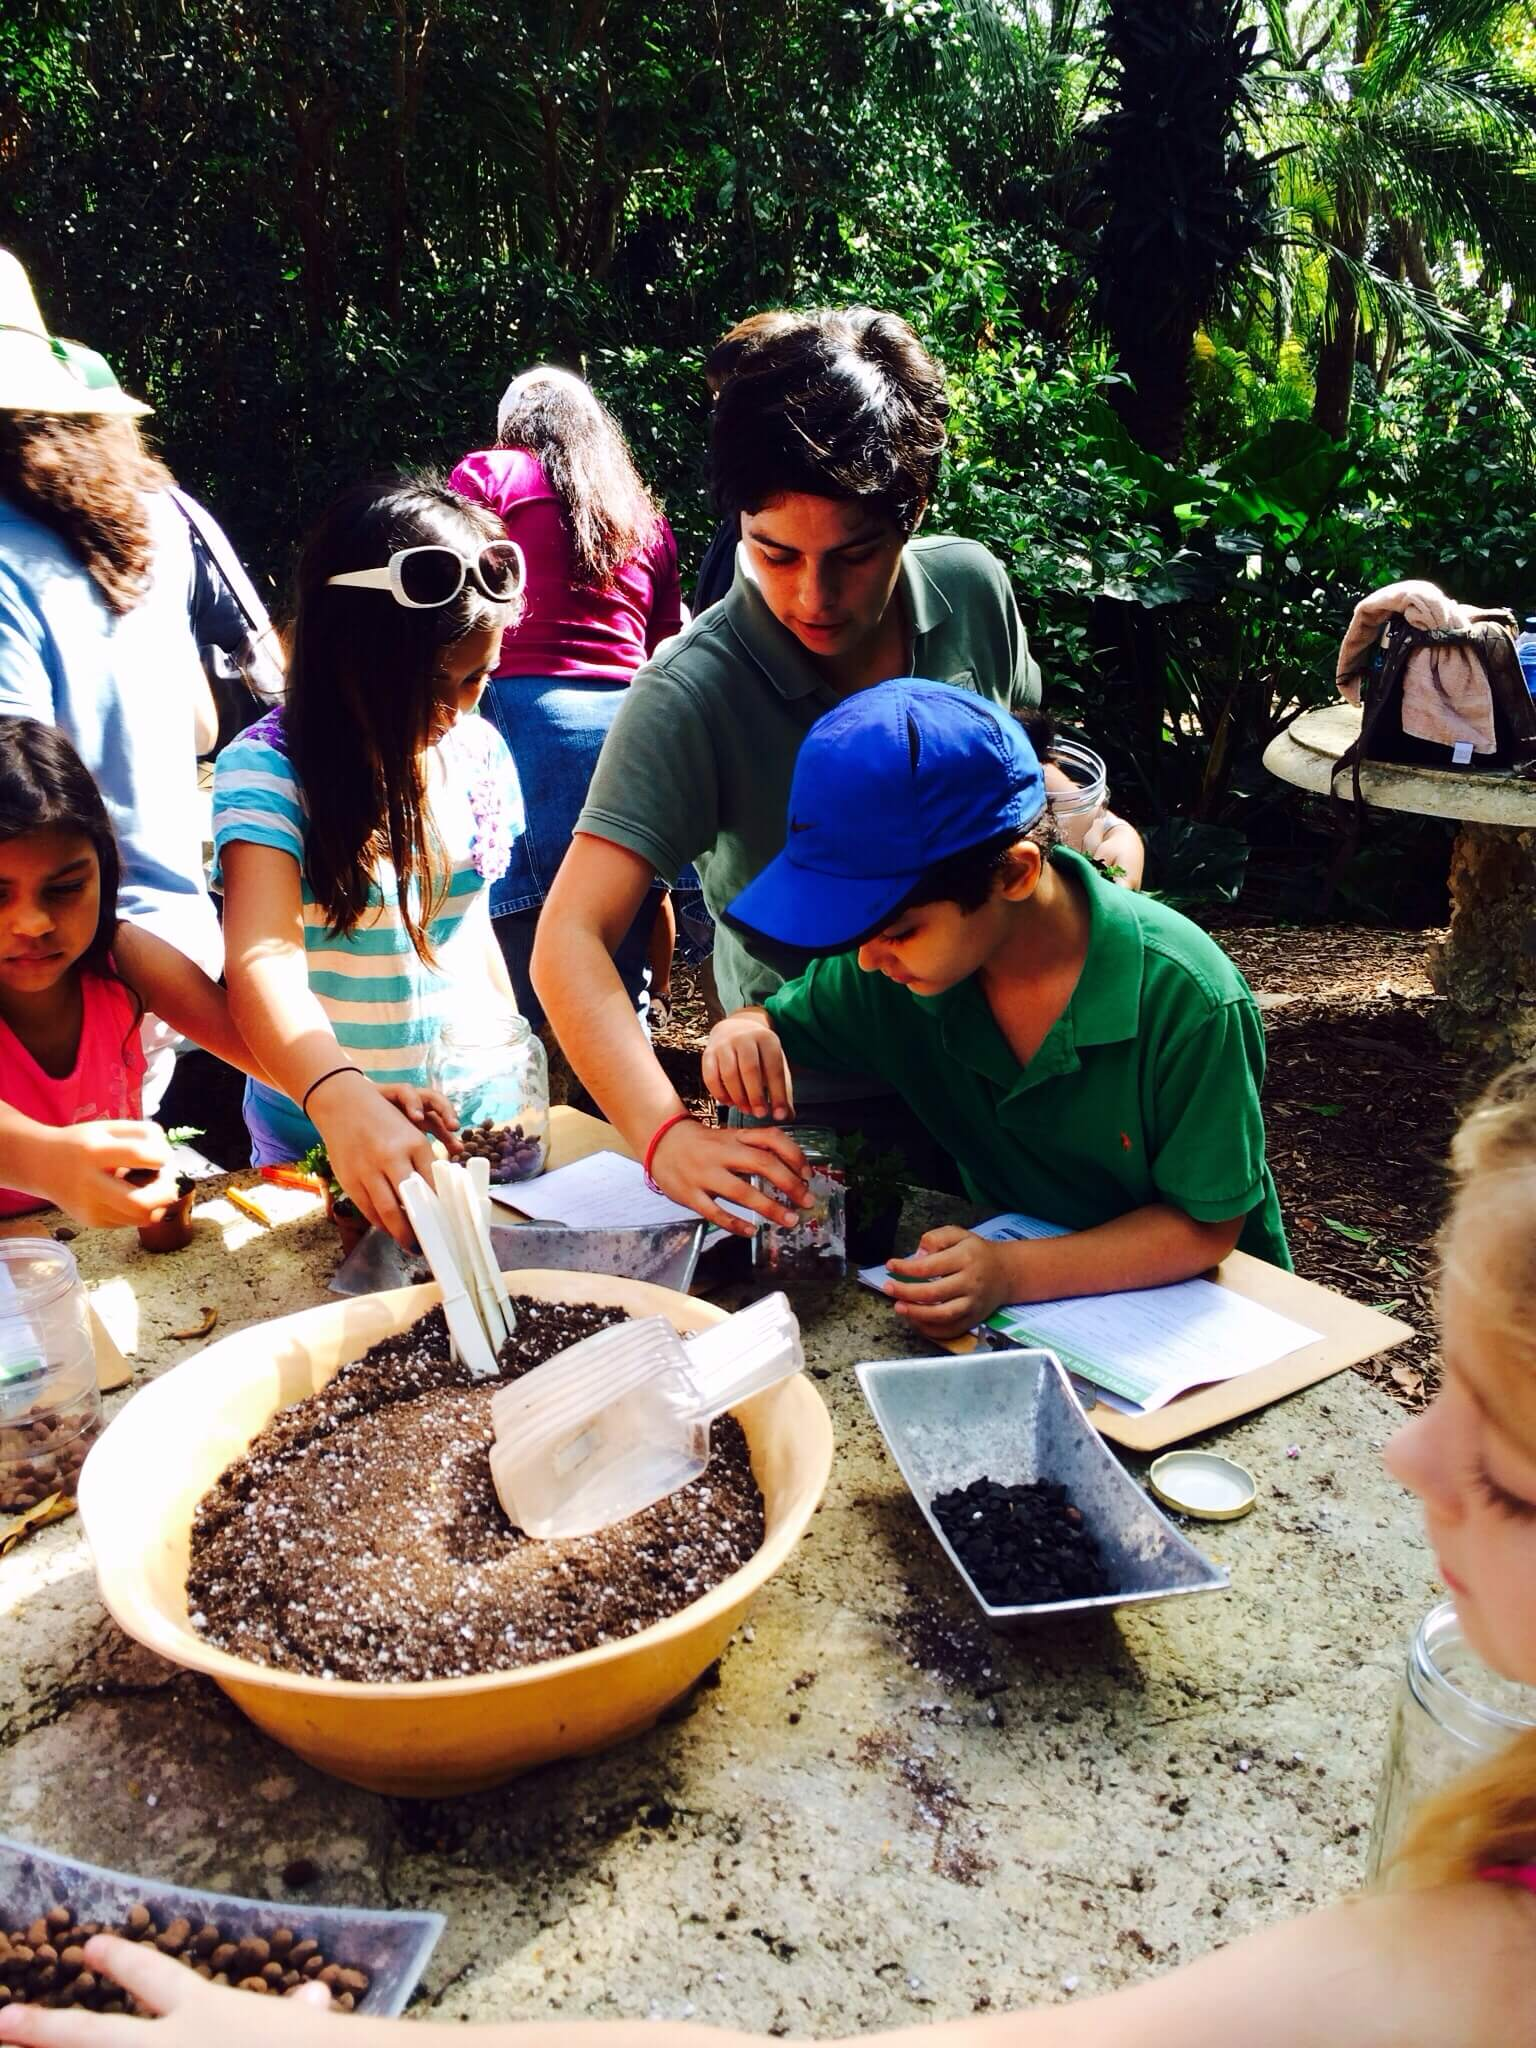 Tropical rainforests class for homeschoolers at Fairchild